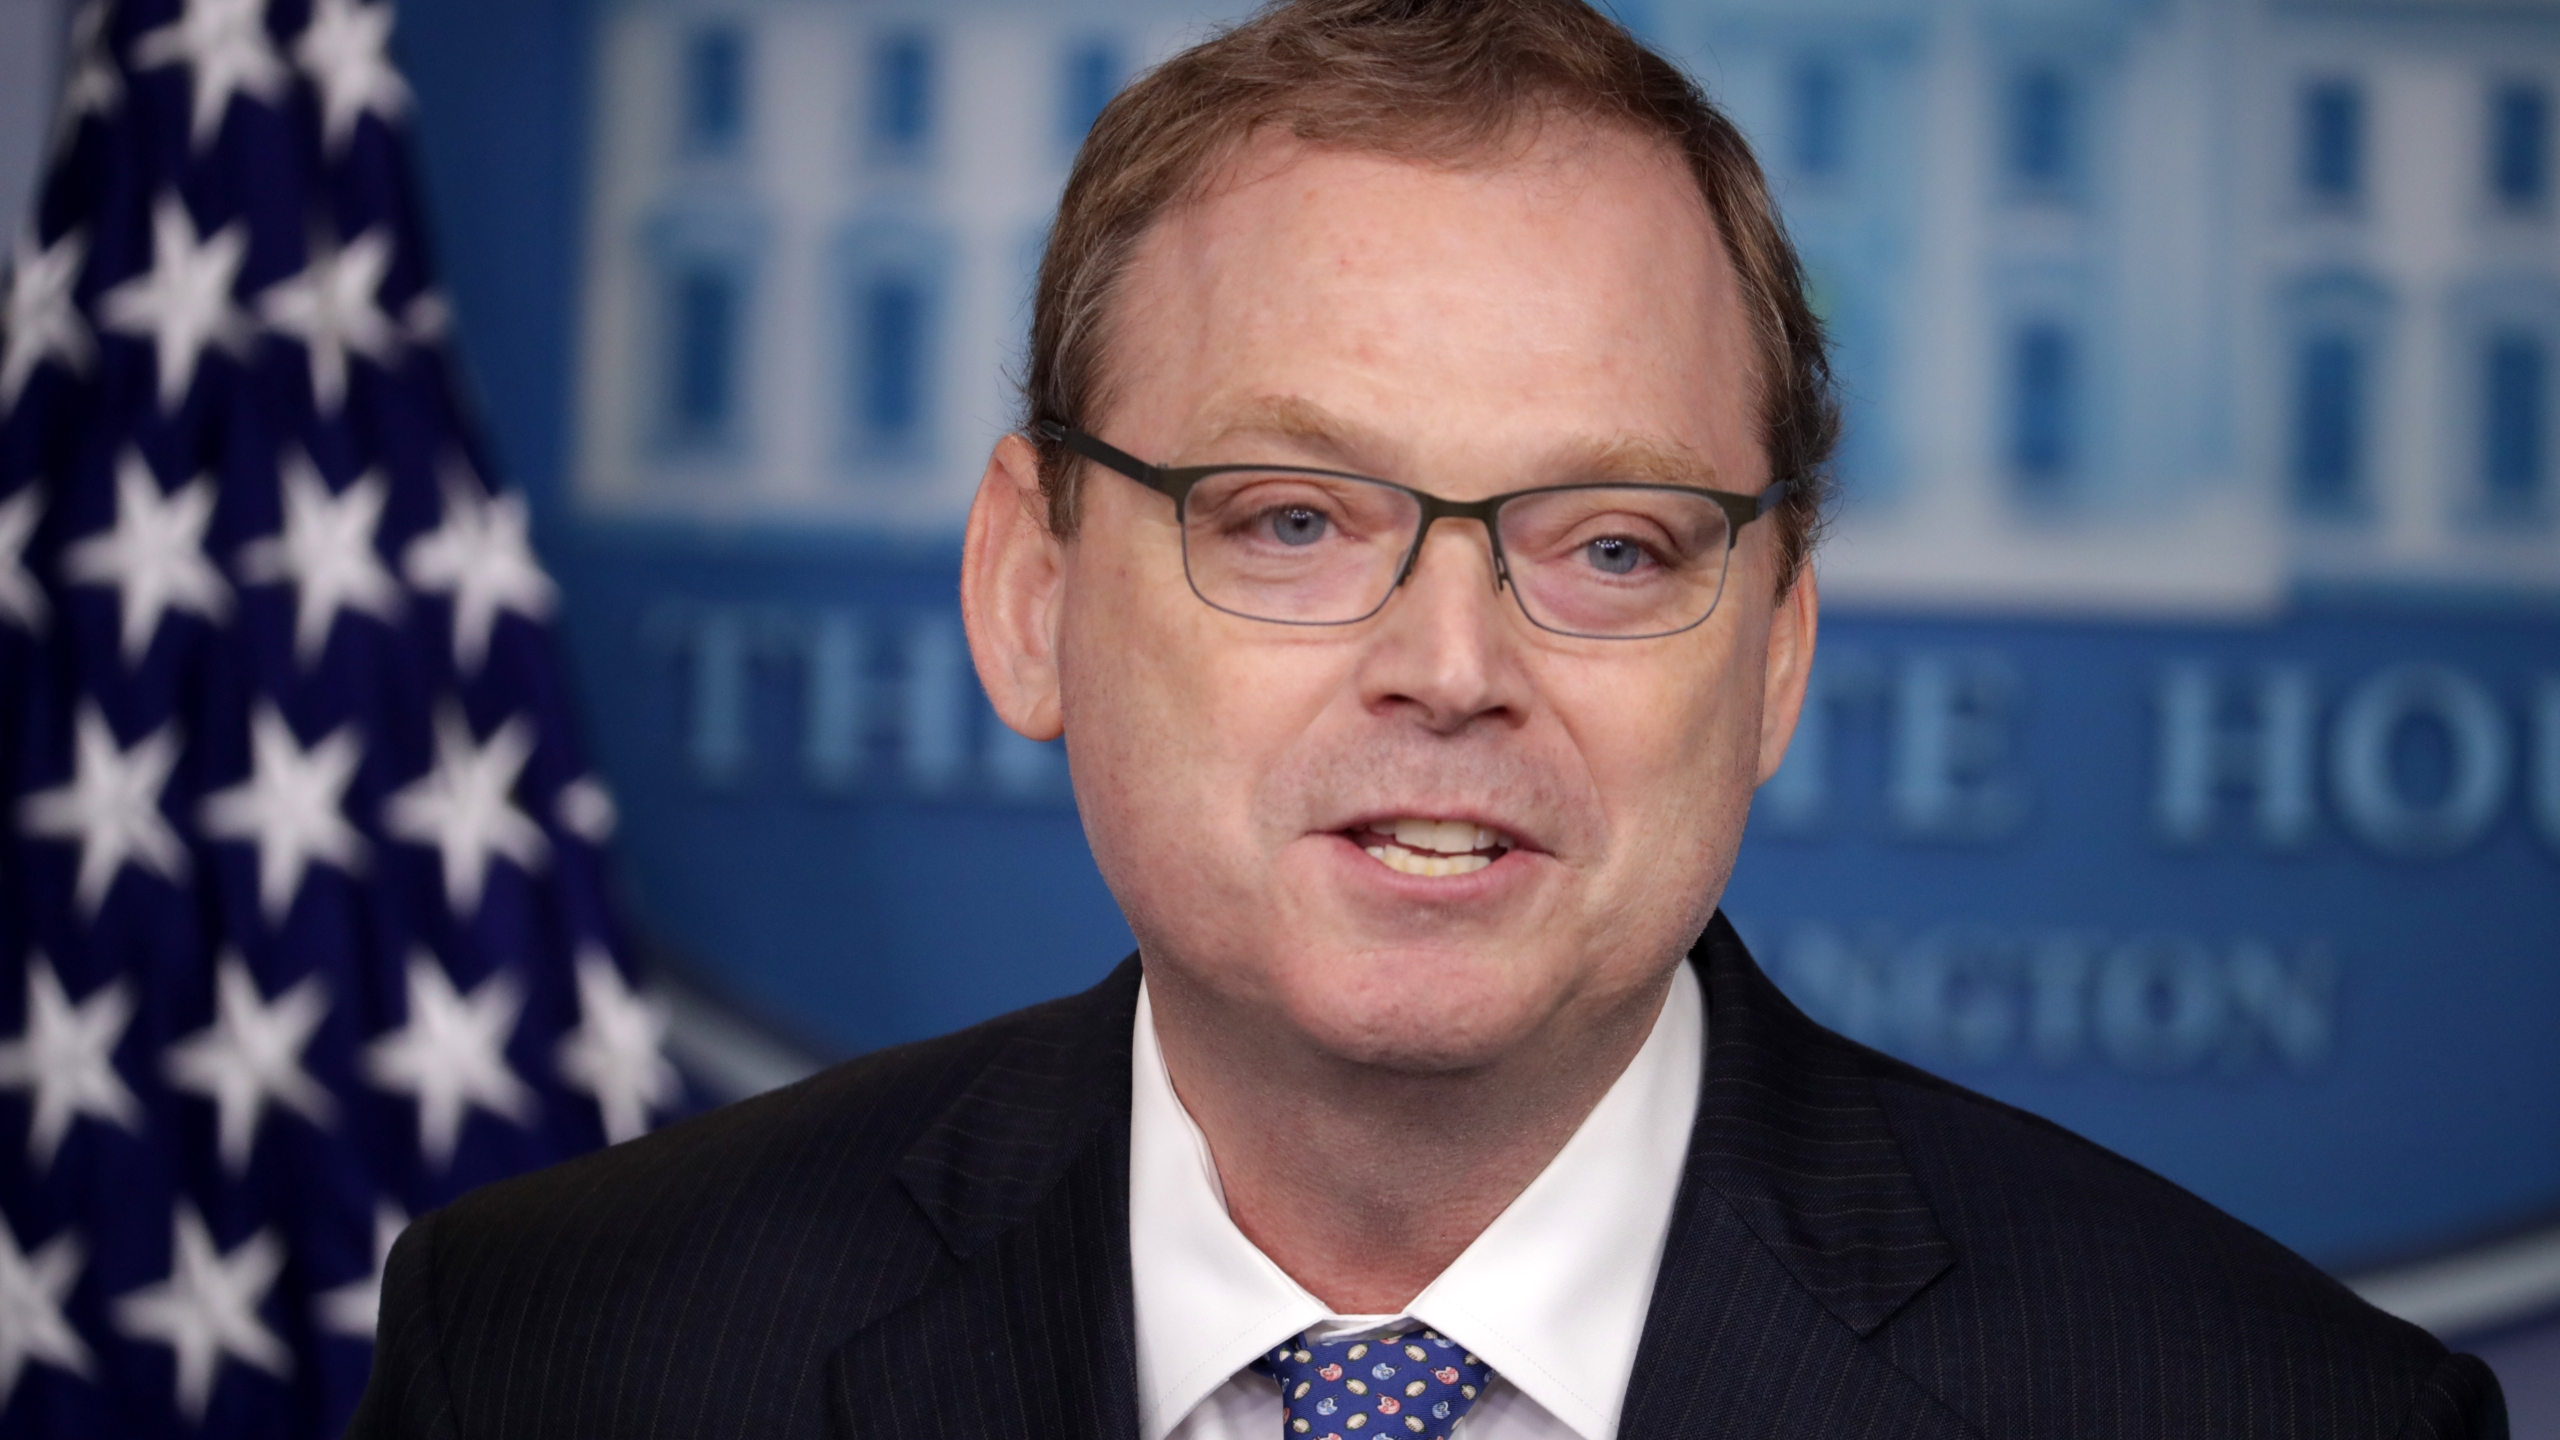 White House Council of Economic Advisers Chairman Kevin Hassett briefs reporters about the Trump Administration's economic policy during a news conference in the Brady Press Briefing Room at the White House September 10, 2018 in Washington, DC. (Credit: Chip Somodevilla/Getty Images)